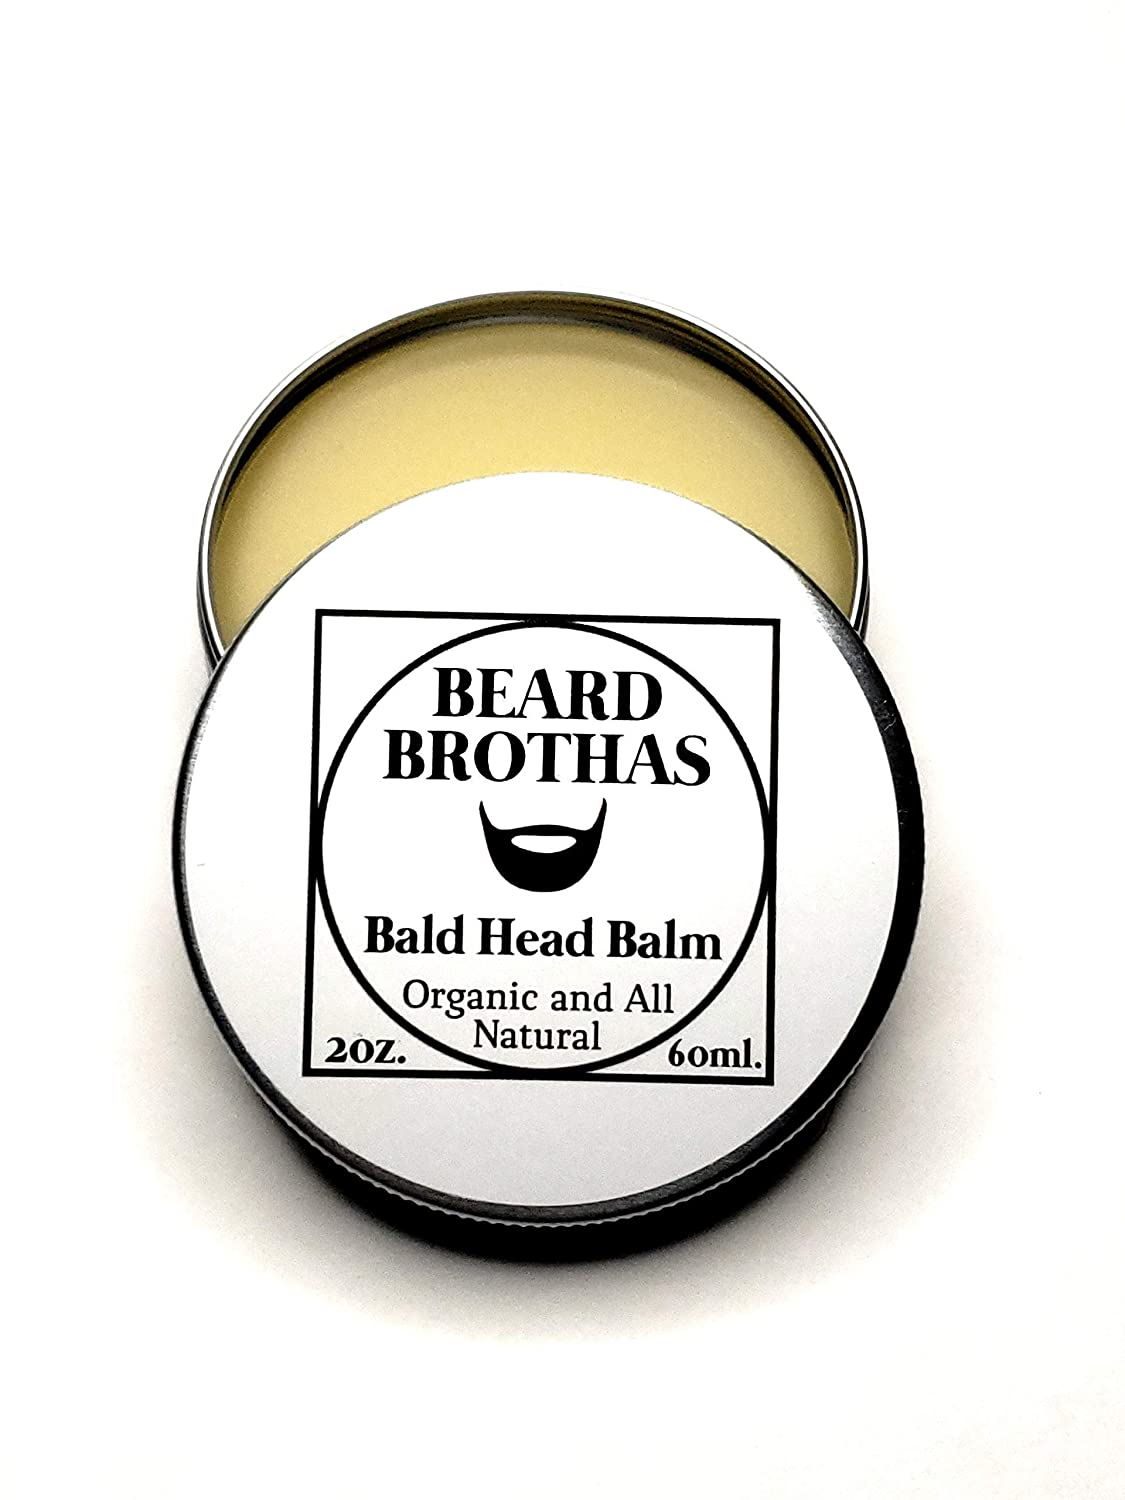 Bald Head Balm Moisturizer. Organic Cold Pressed Unrefined Argan & Jojoba Oil. Shea Butter, Cocoa butter, & Bees Wax for Lasting Shine & Protection. Lightly Scented with an Essential Oil Blend